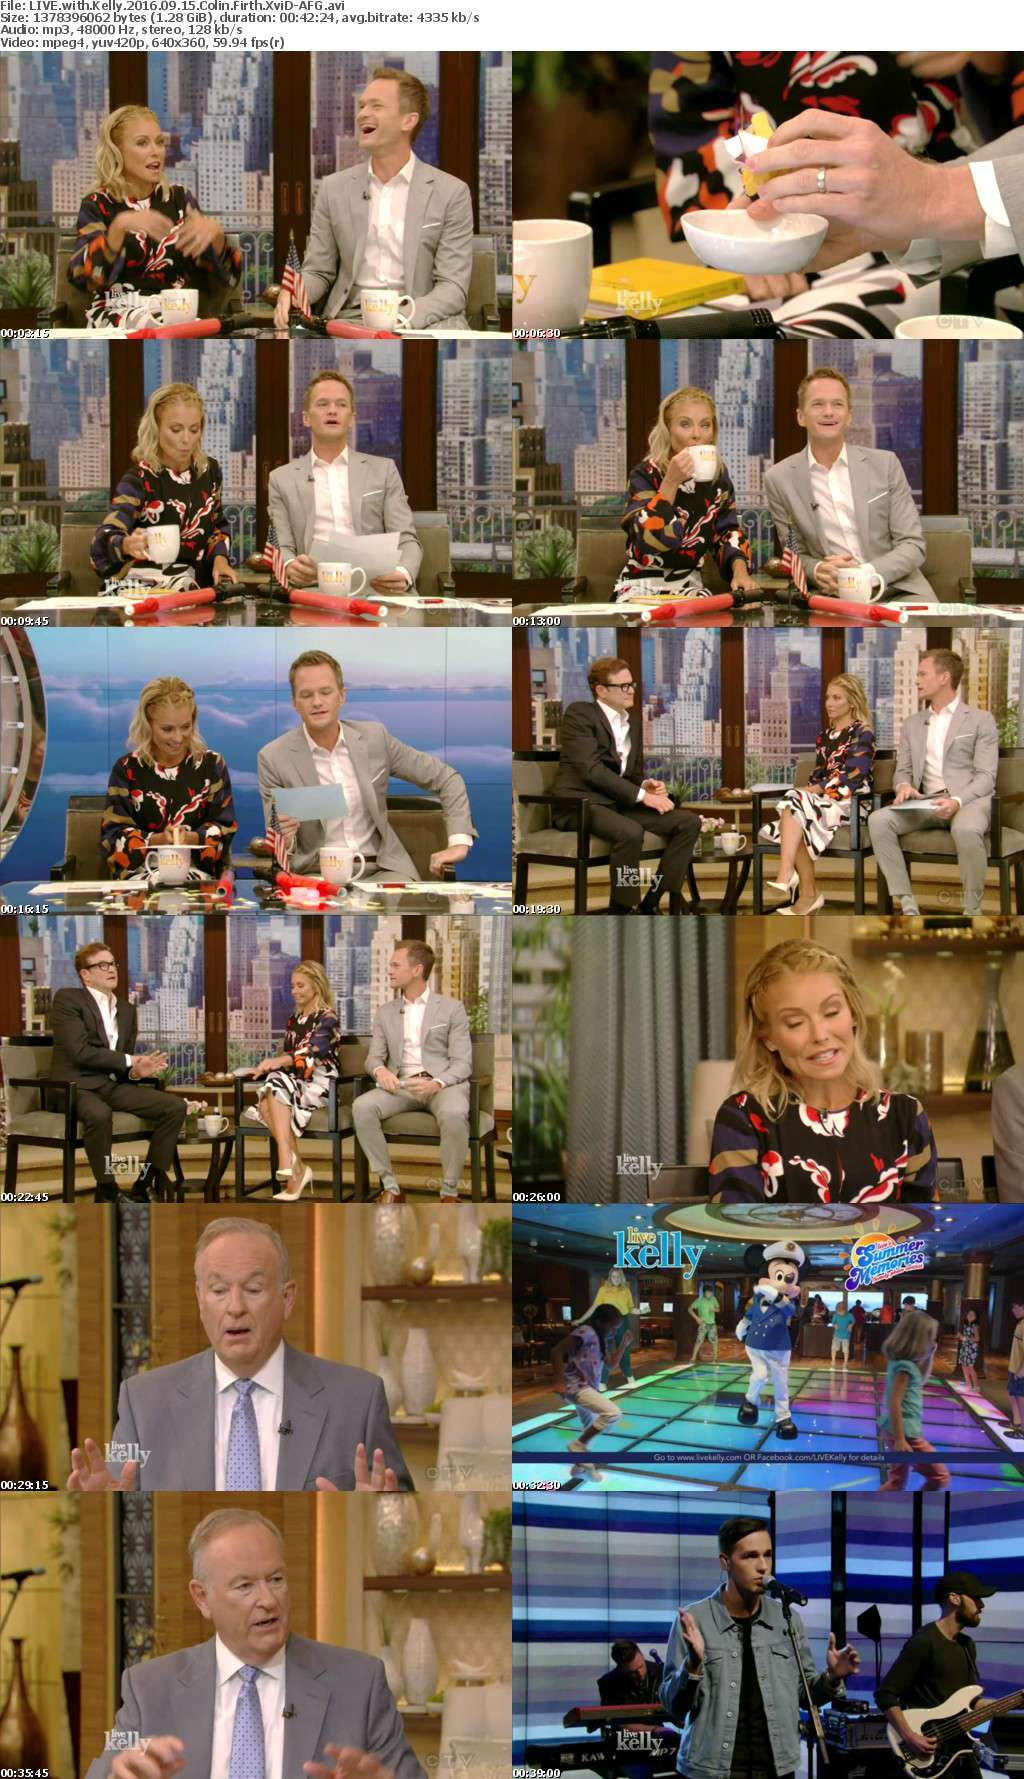 LIVE with Kelly 2016 09 15 Colin Firth XviD-AFG